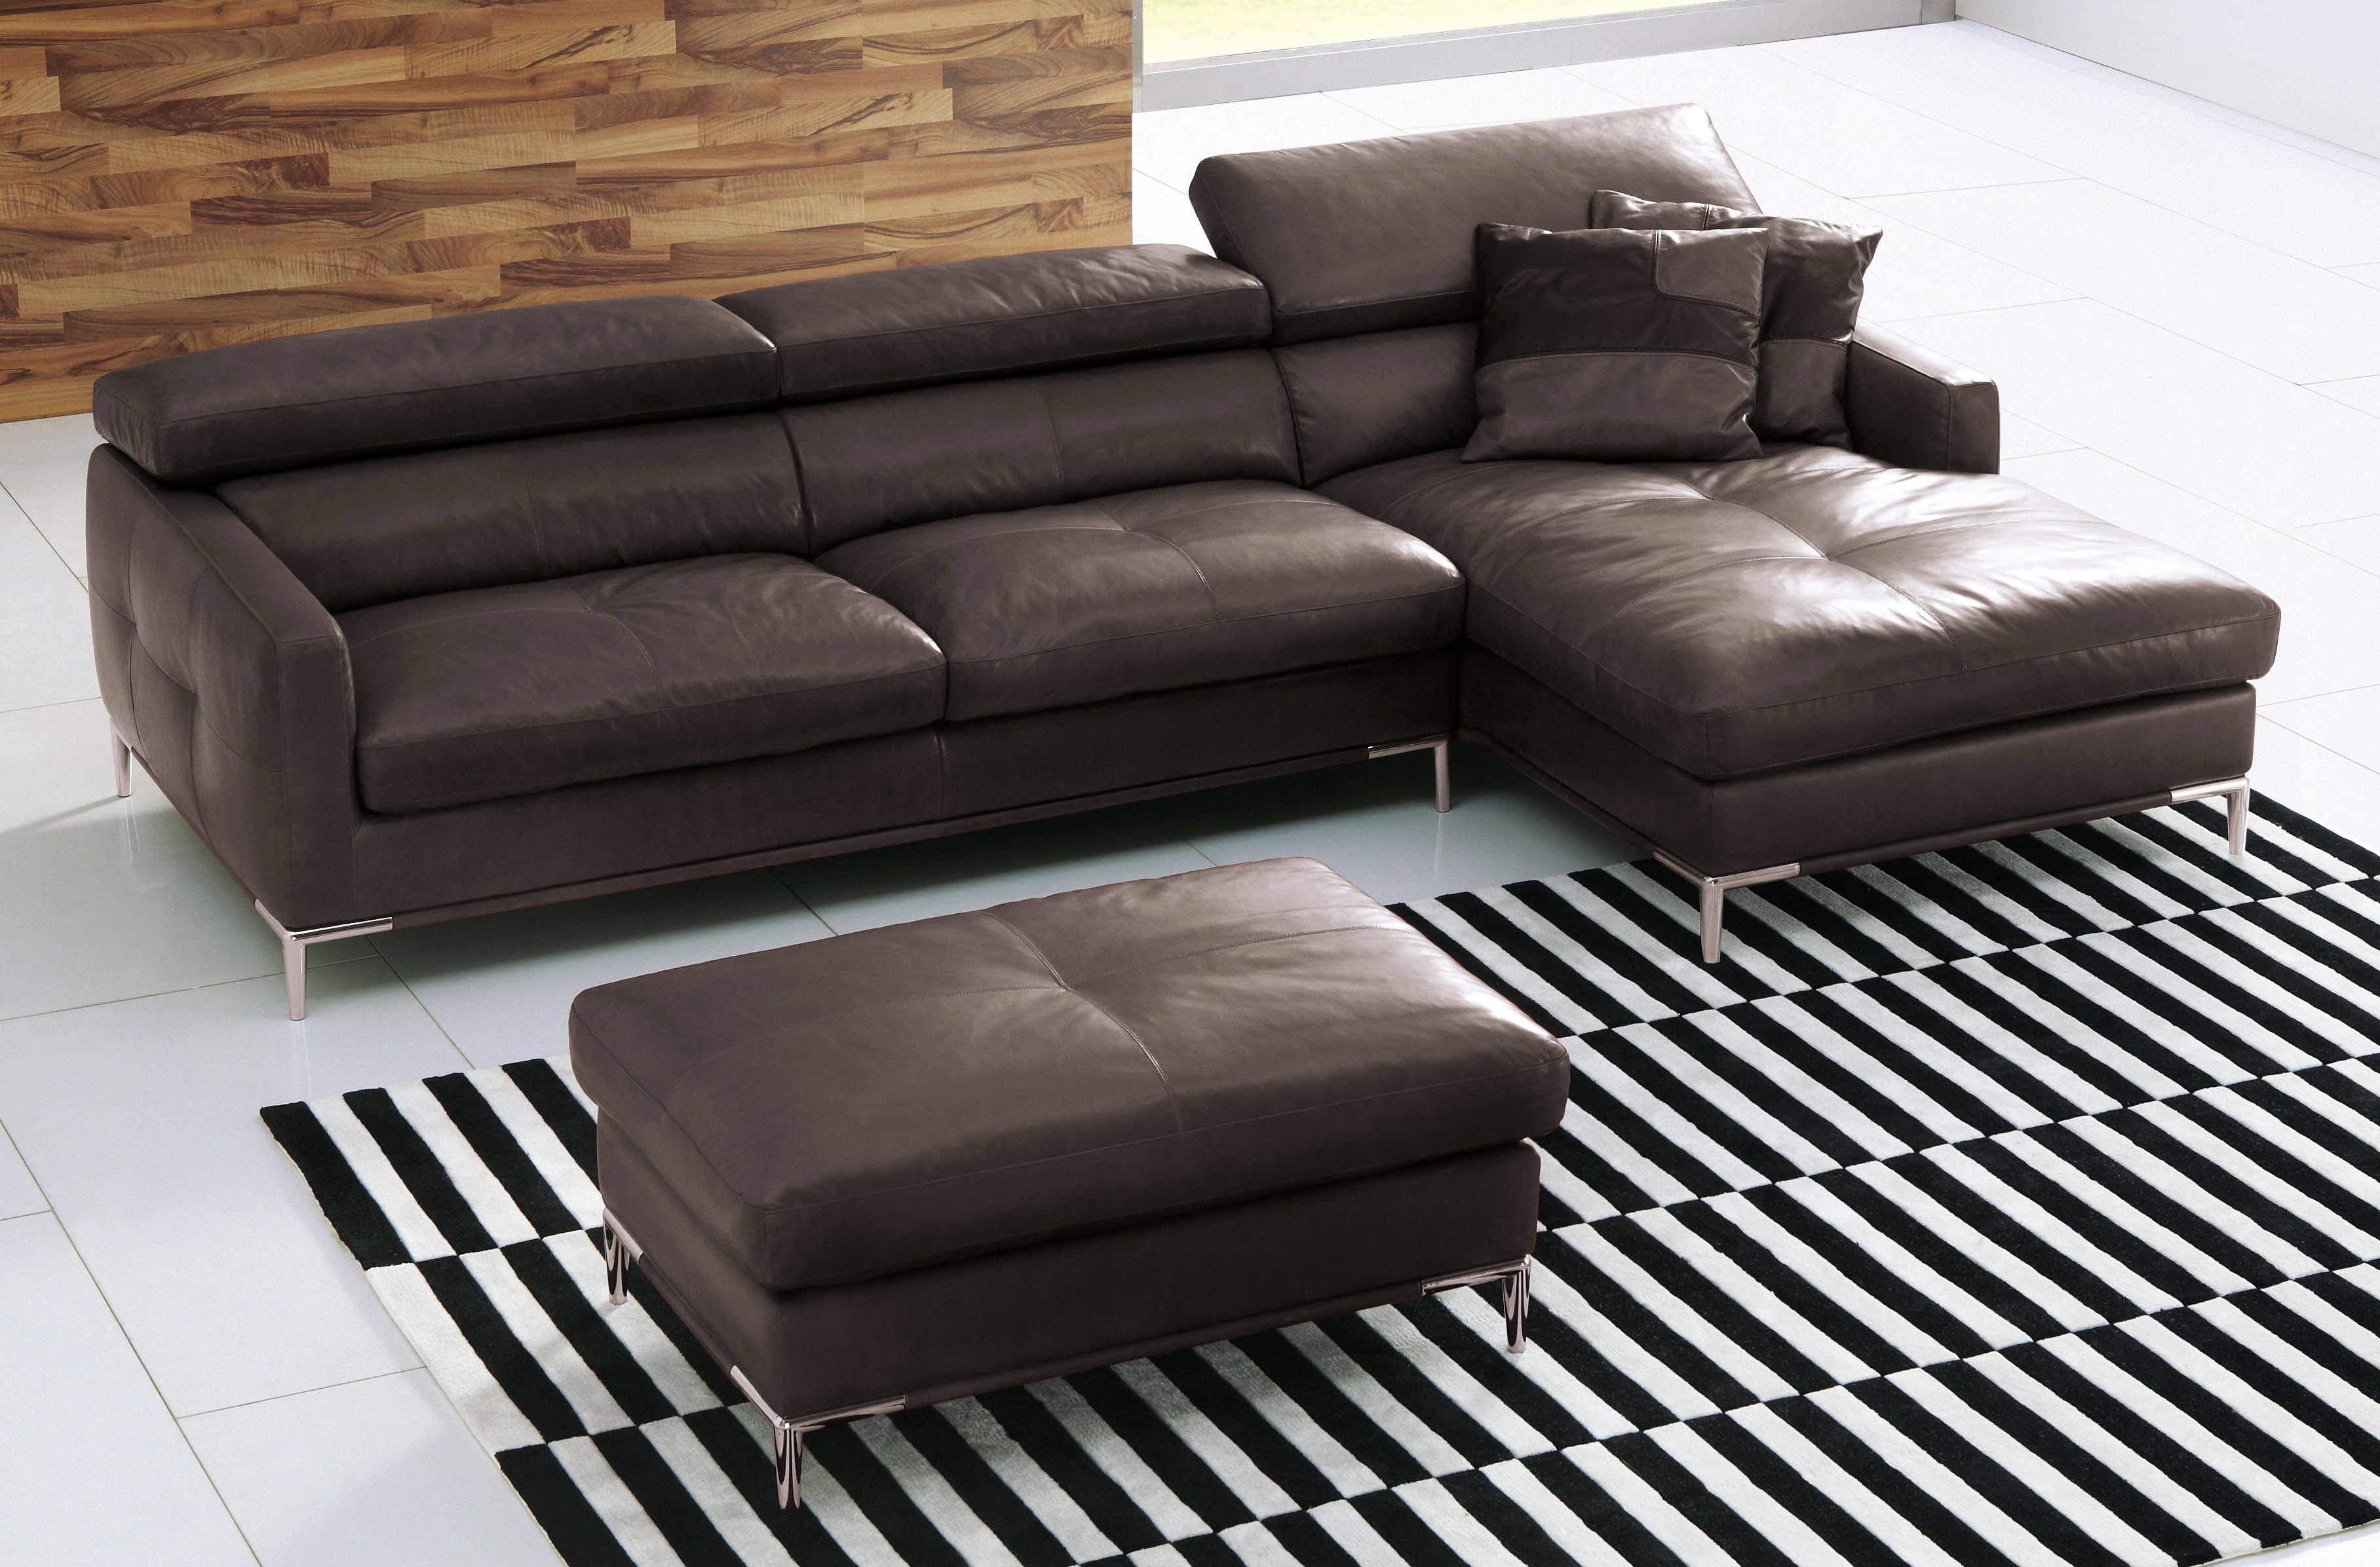 Garden Grove Sofa Elite Full Italian Leather L Shape Furniture With Pillows